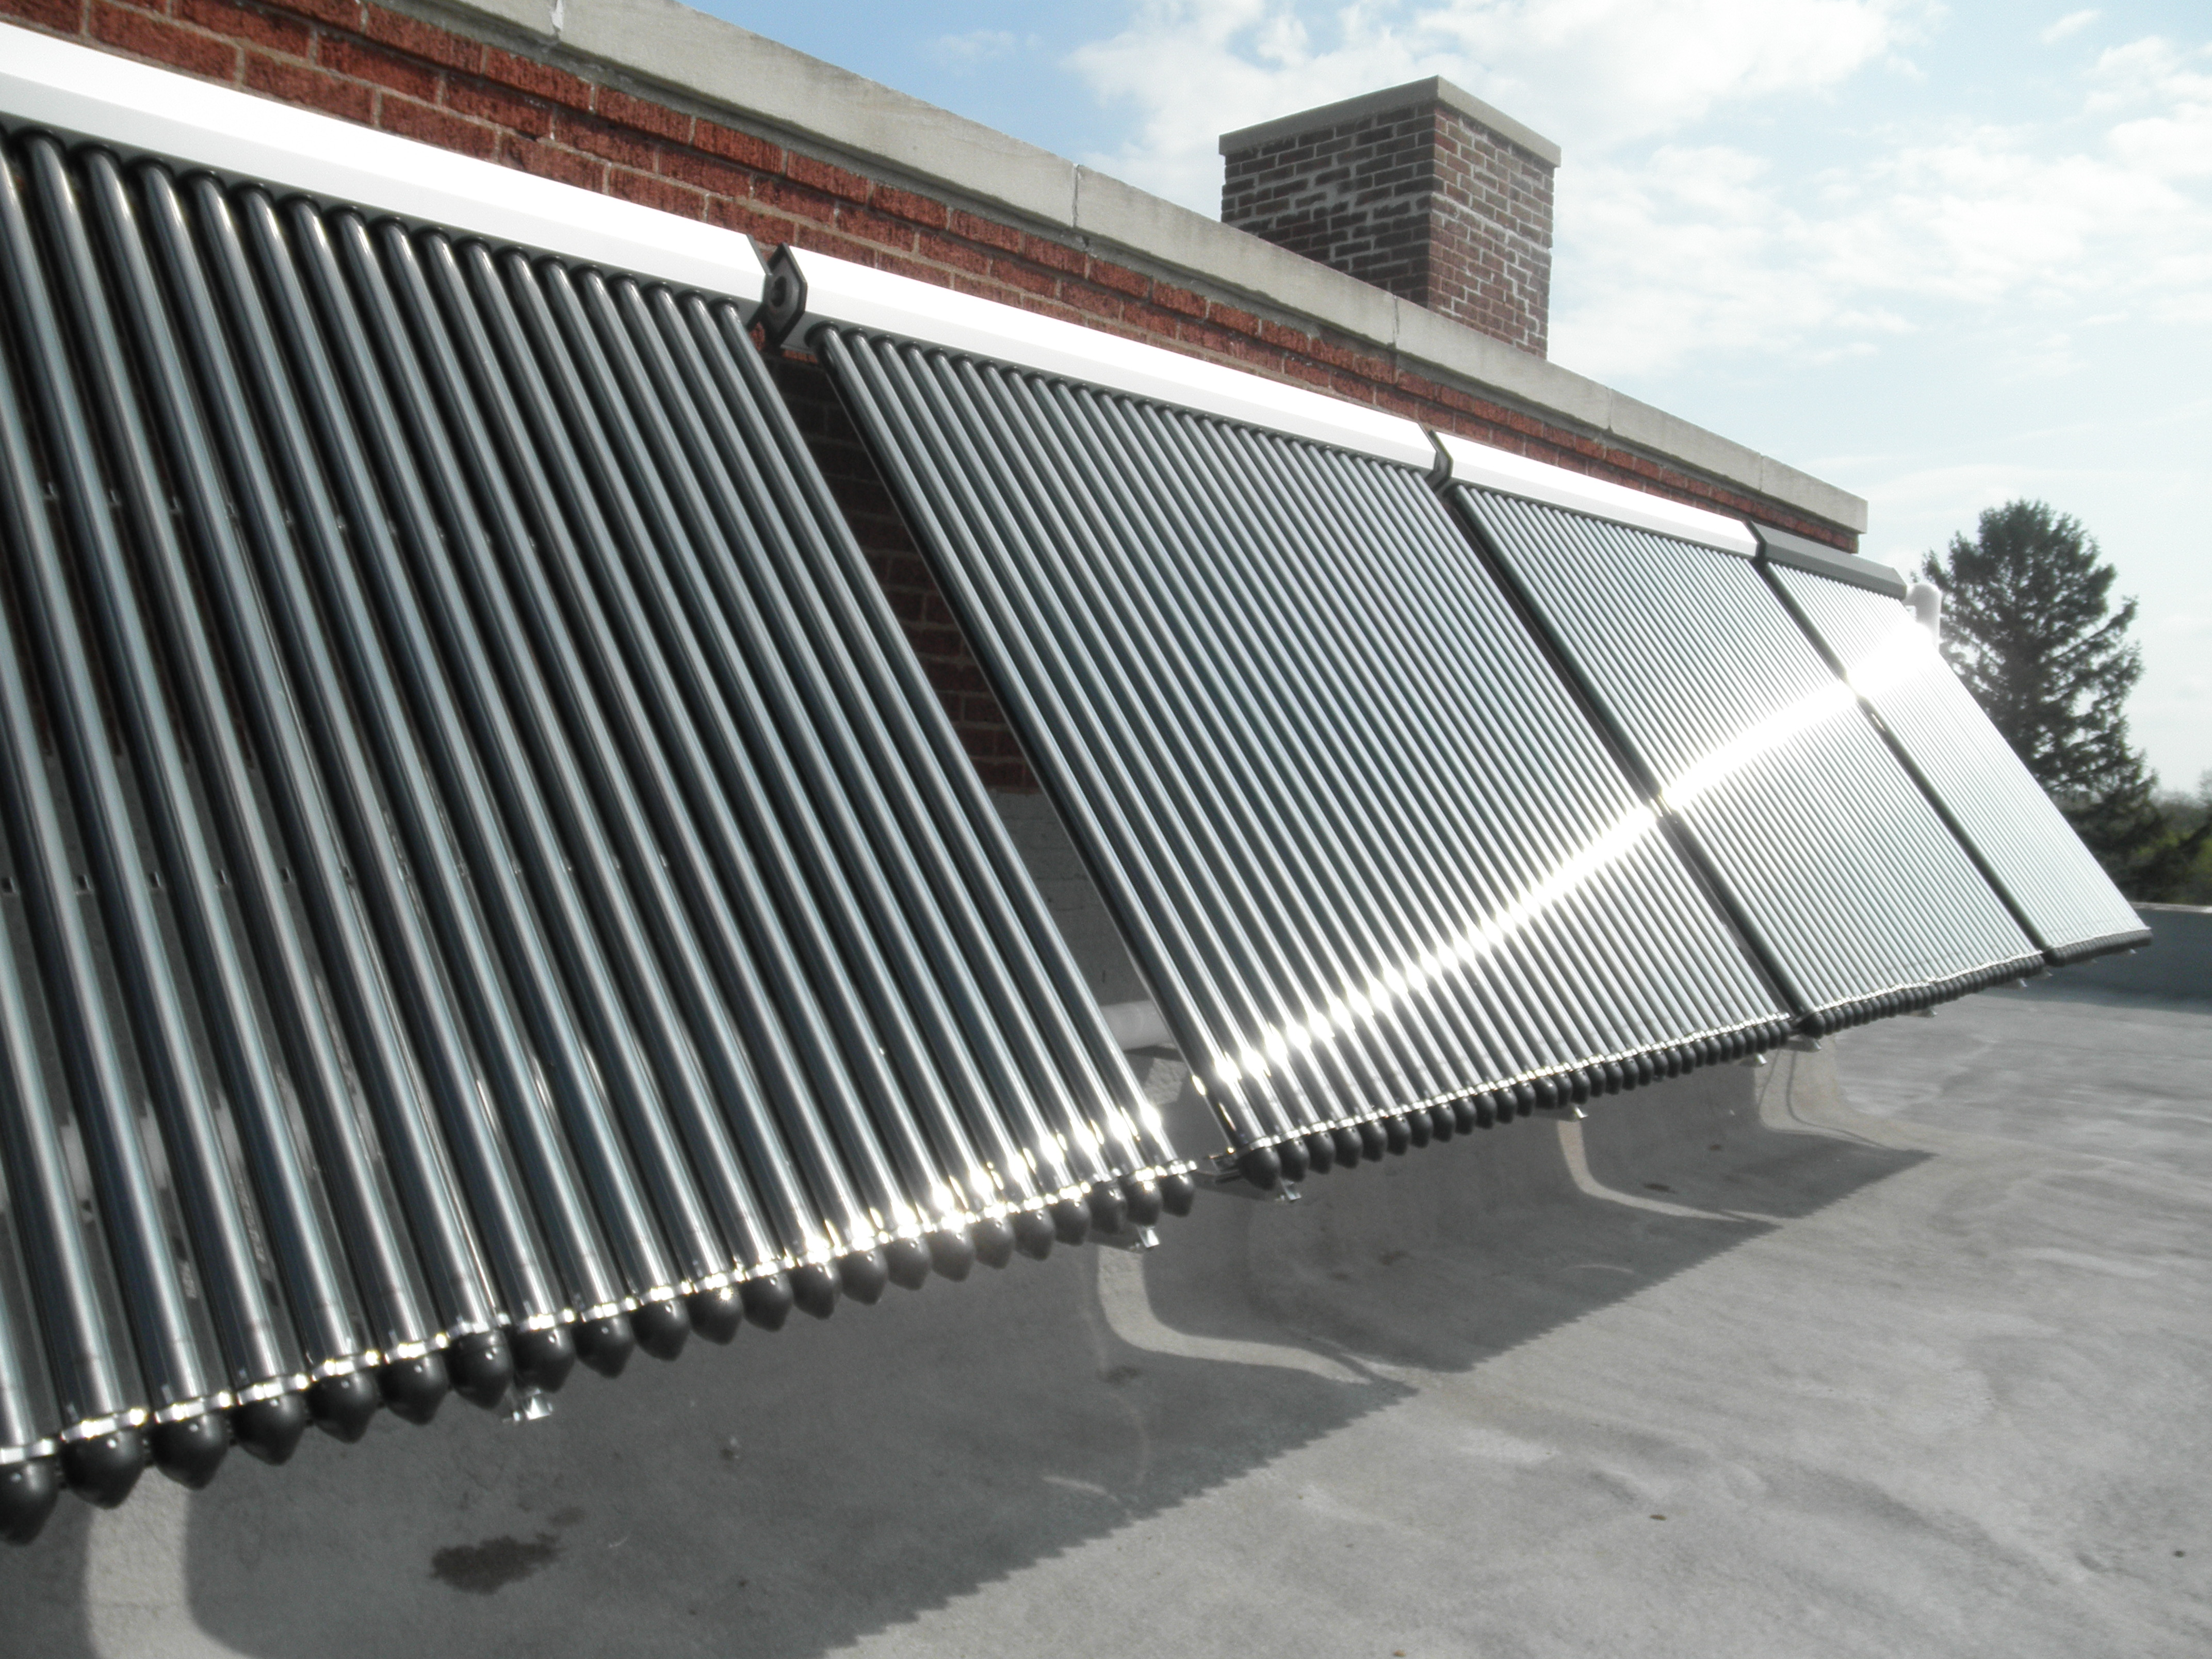 Wall-mounted evacuated tube solar thermal system